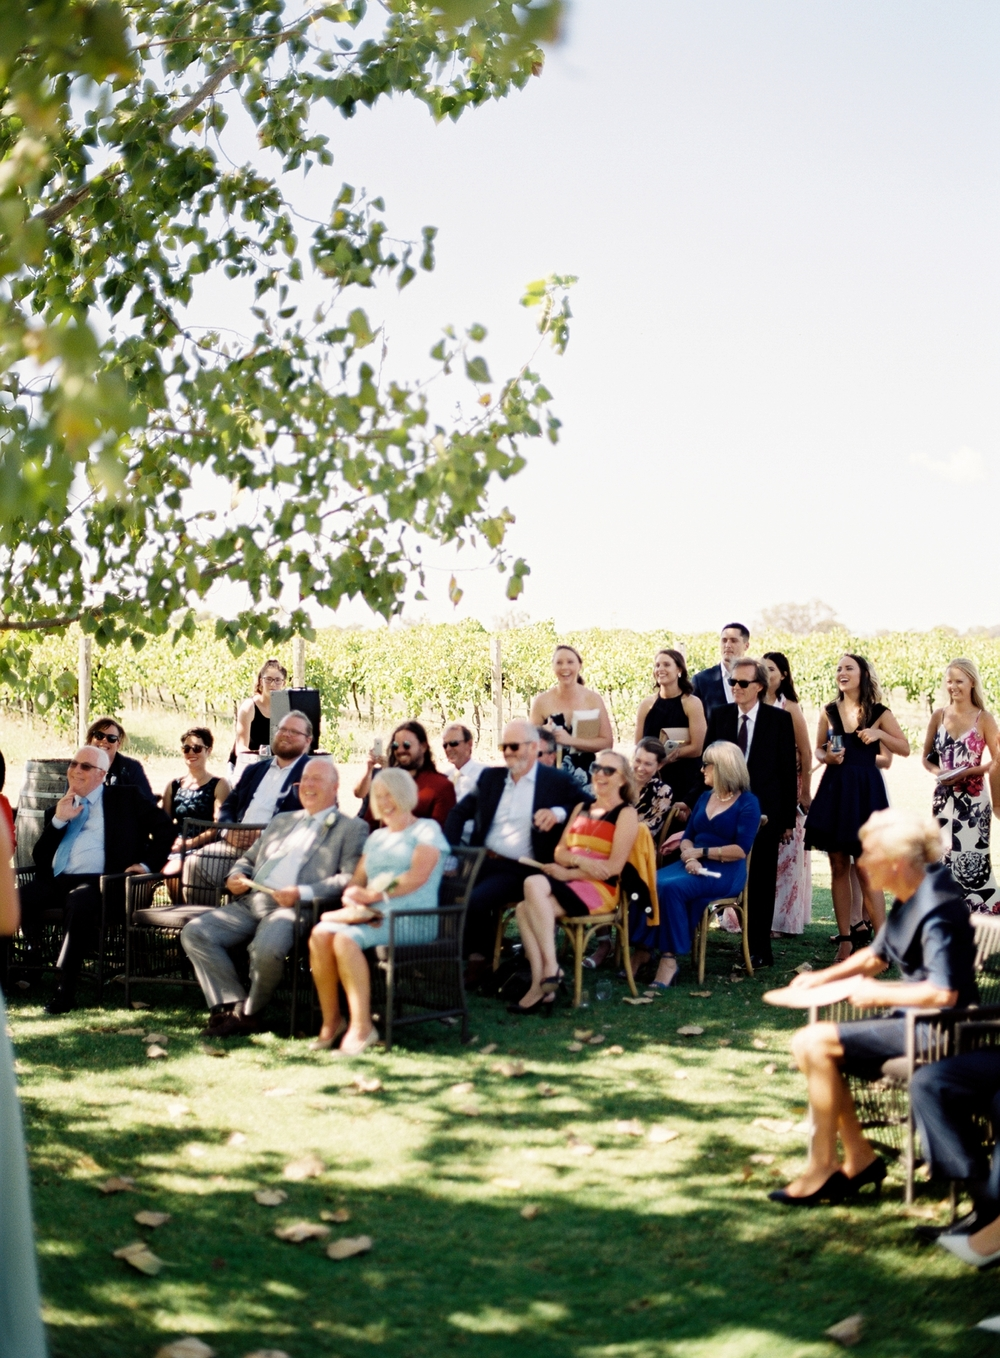 The Vine Grove Mudgee Wedding, Photography by Mr Edwards_1760.jpg